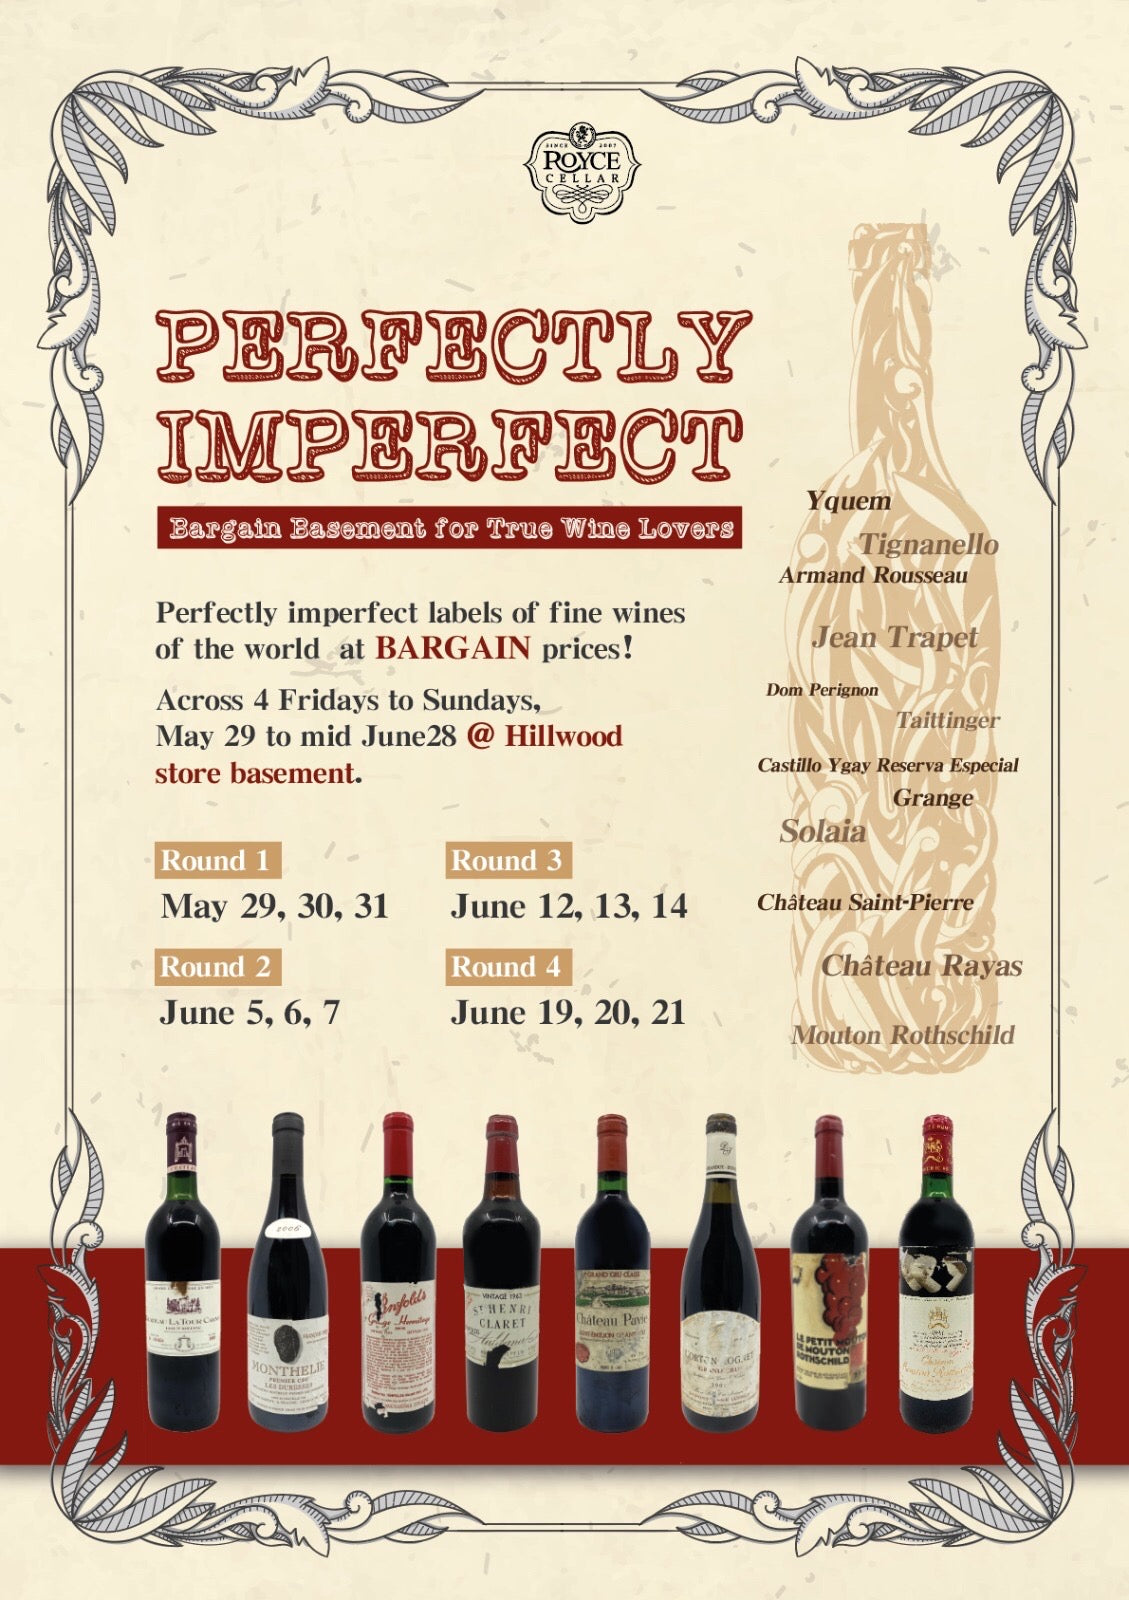 Perfectly Imperfect: Bargain Basement for True Wine Lovers!